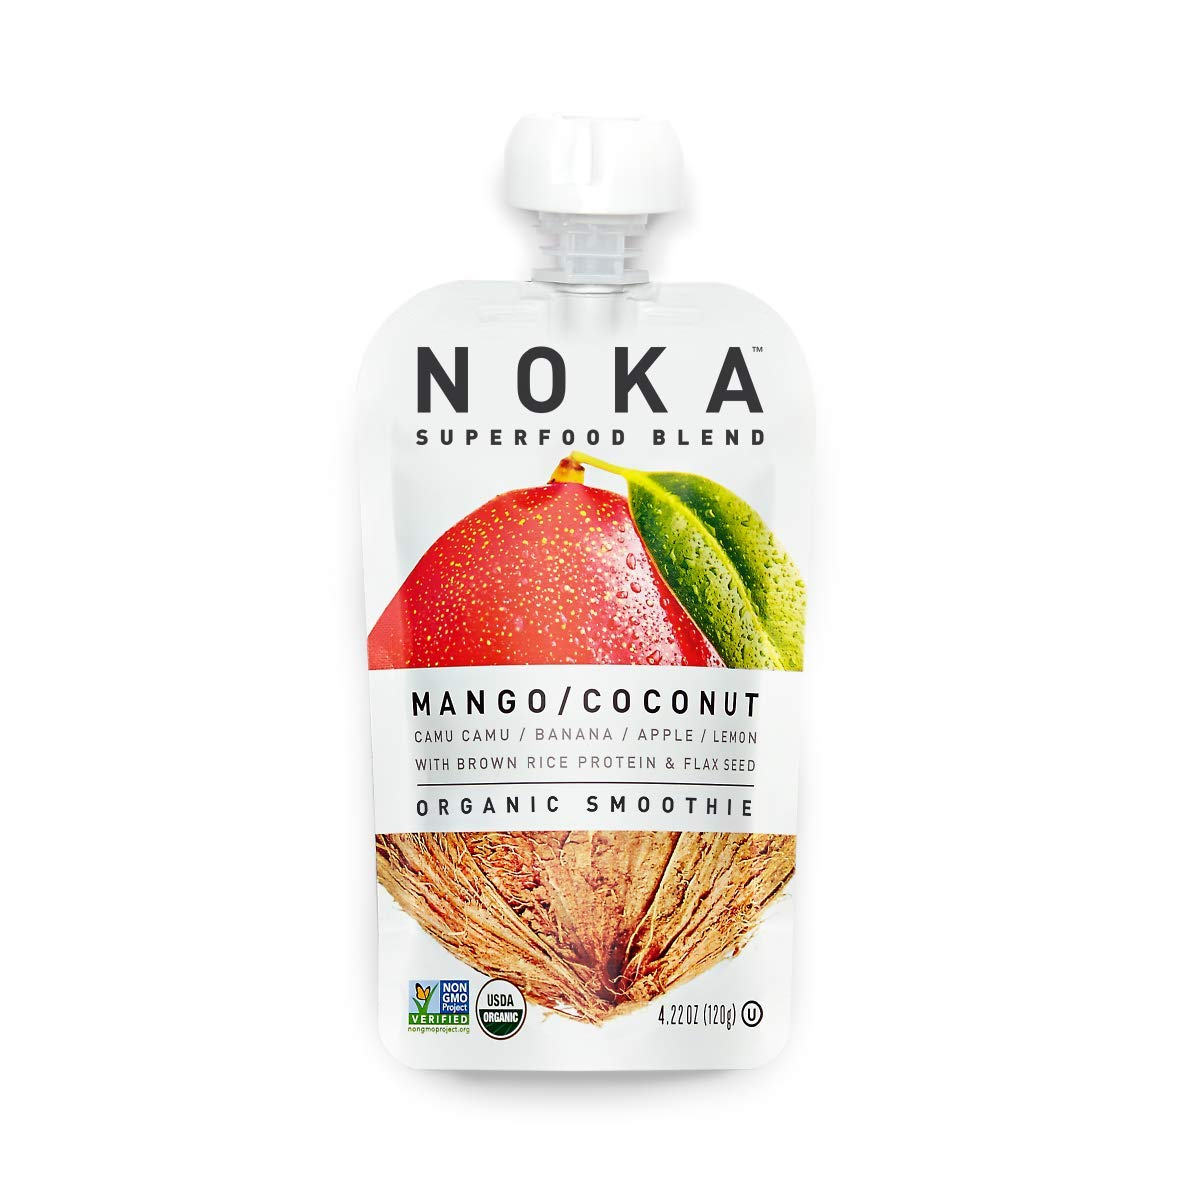 NOKA Superfood Pouches (Mango Coconut) | 100% Organic Fruit And Veggie Smoothie Squeeze Packs | No Added Sugar, Non GMO, Gluten Free, Vegan, 4g Plant Protein | 4.2oz Each - Pack of 6